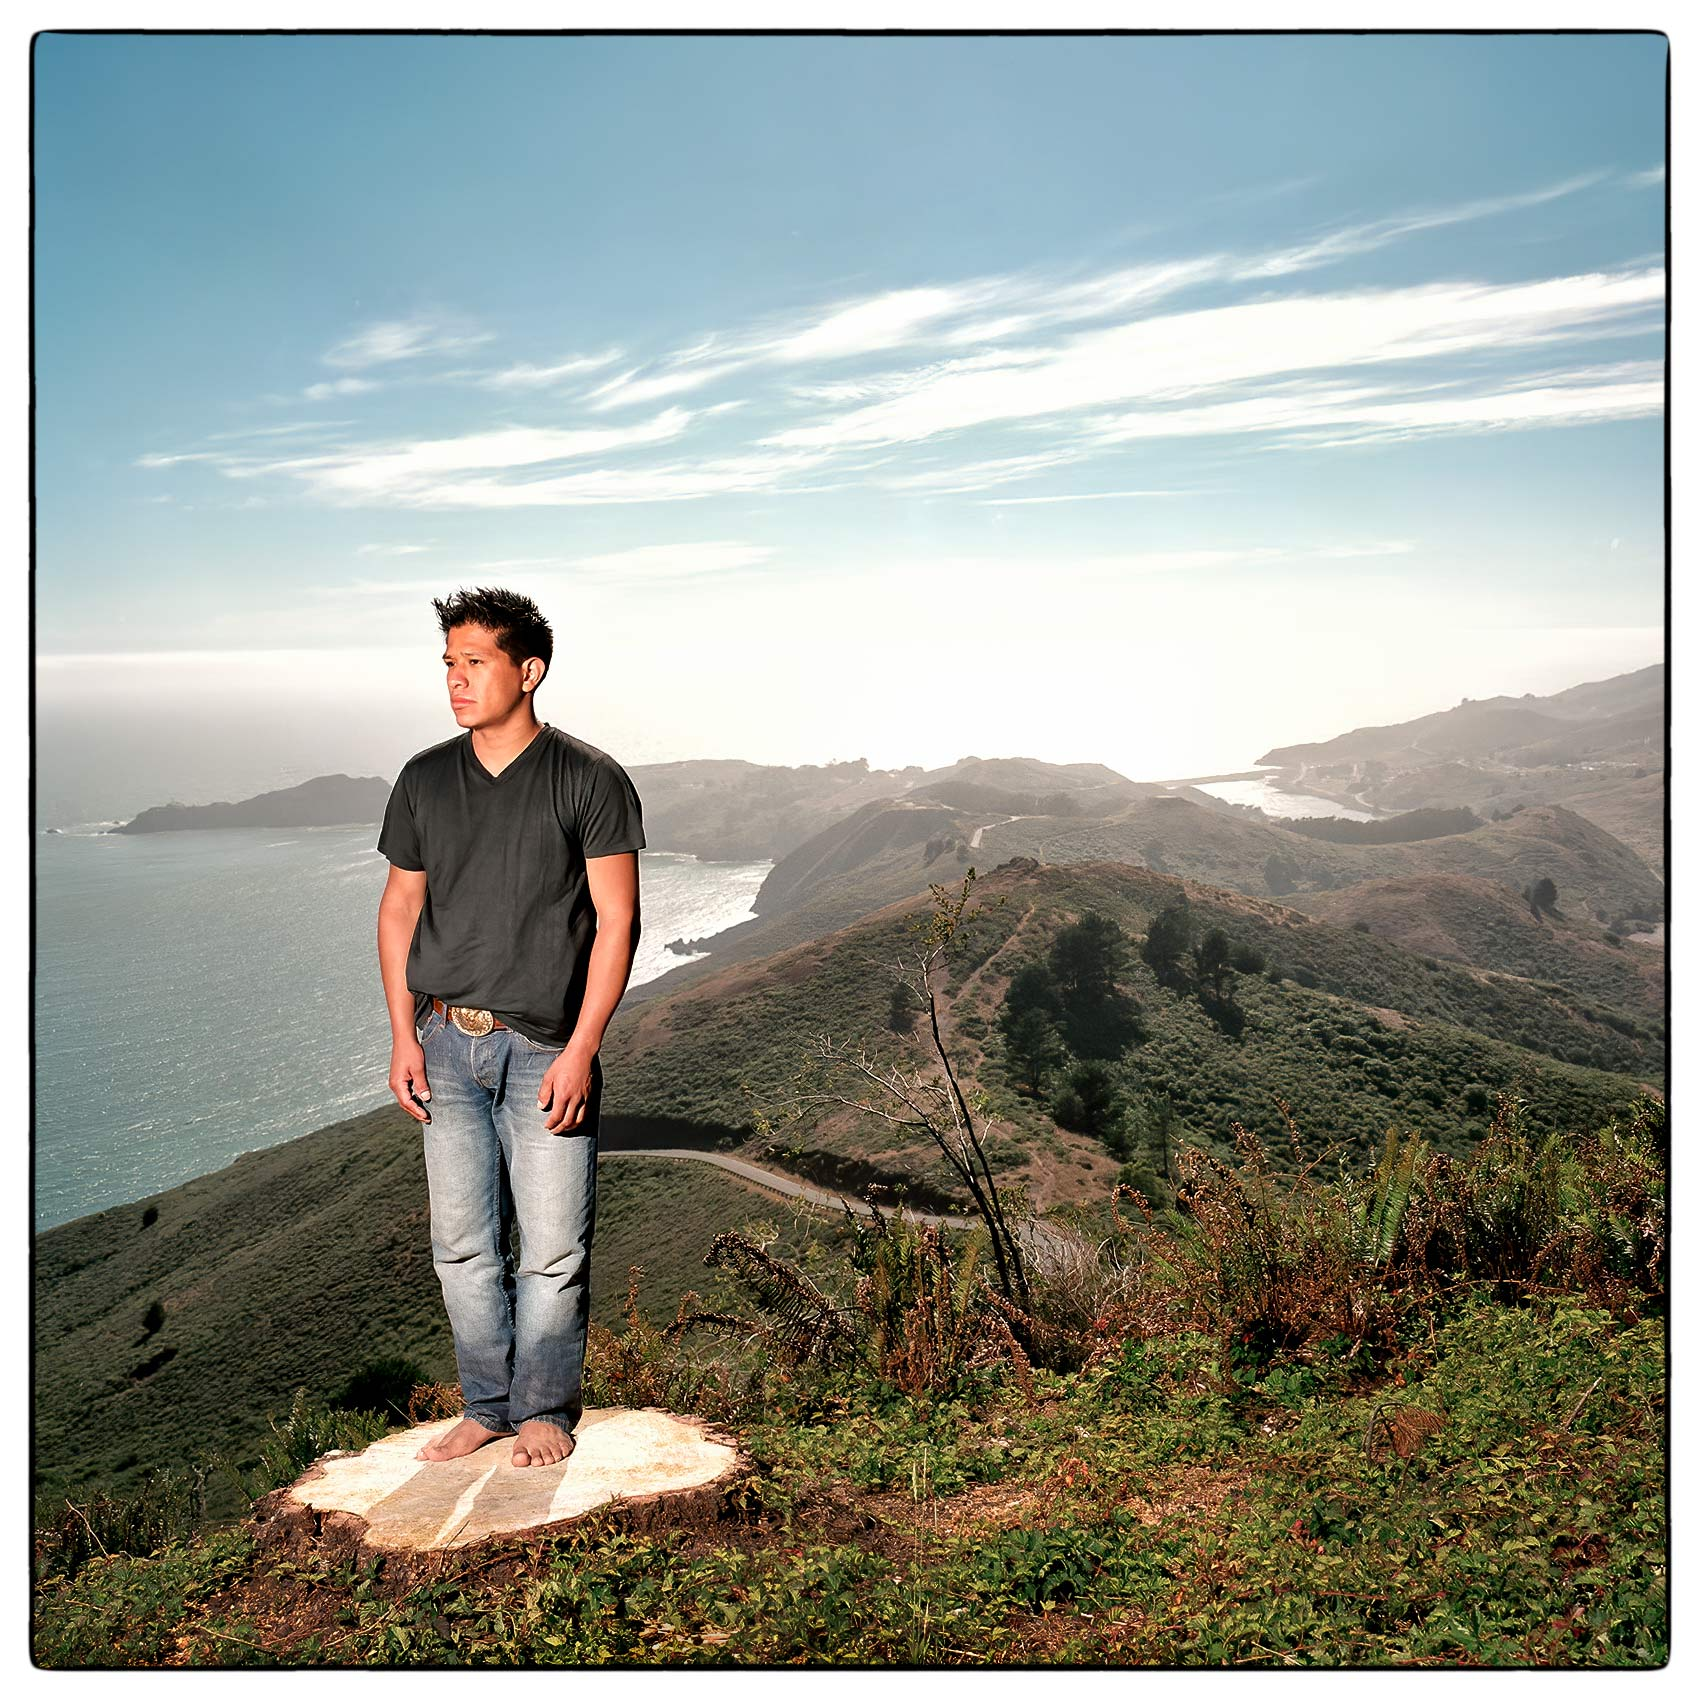 a-young-man-stands-on-a-wood-stump-as-he-looks-out-over-san-francisco-bay